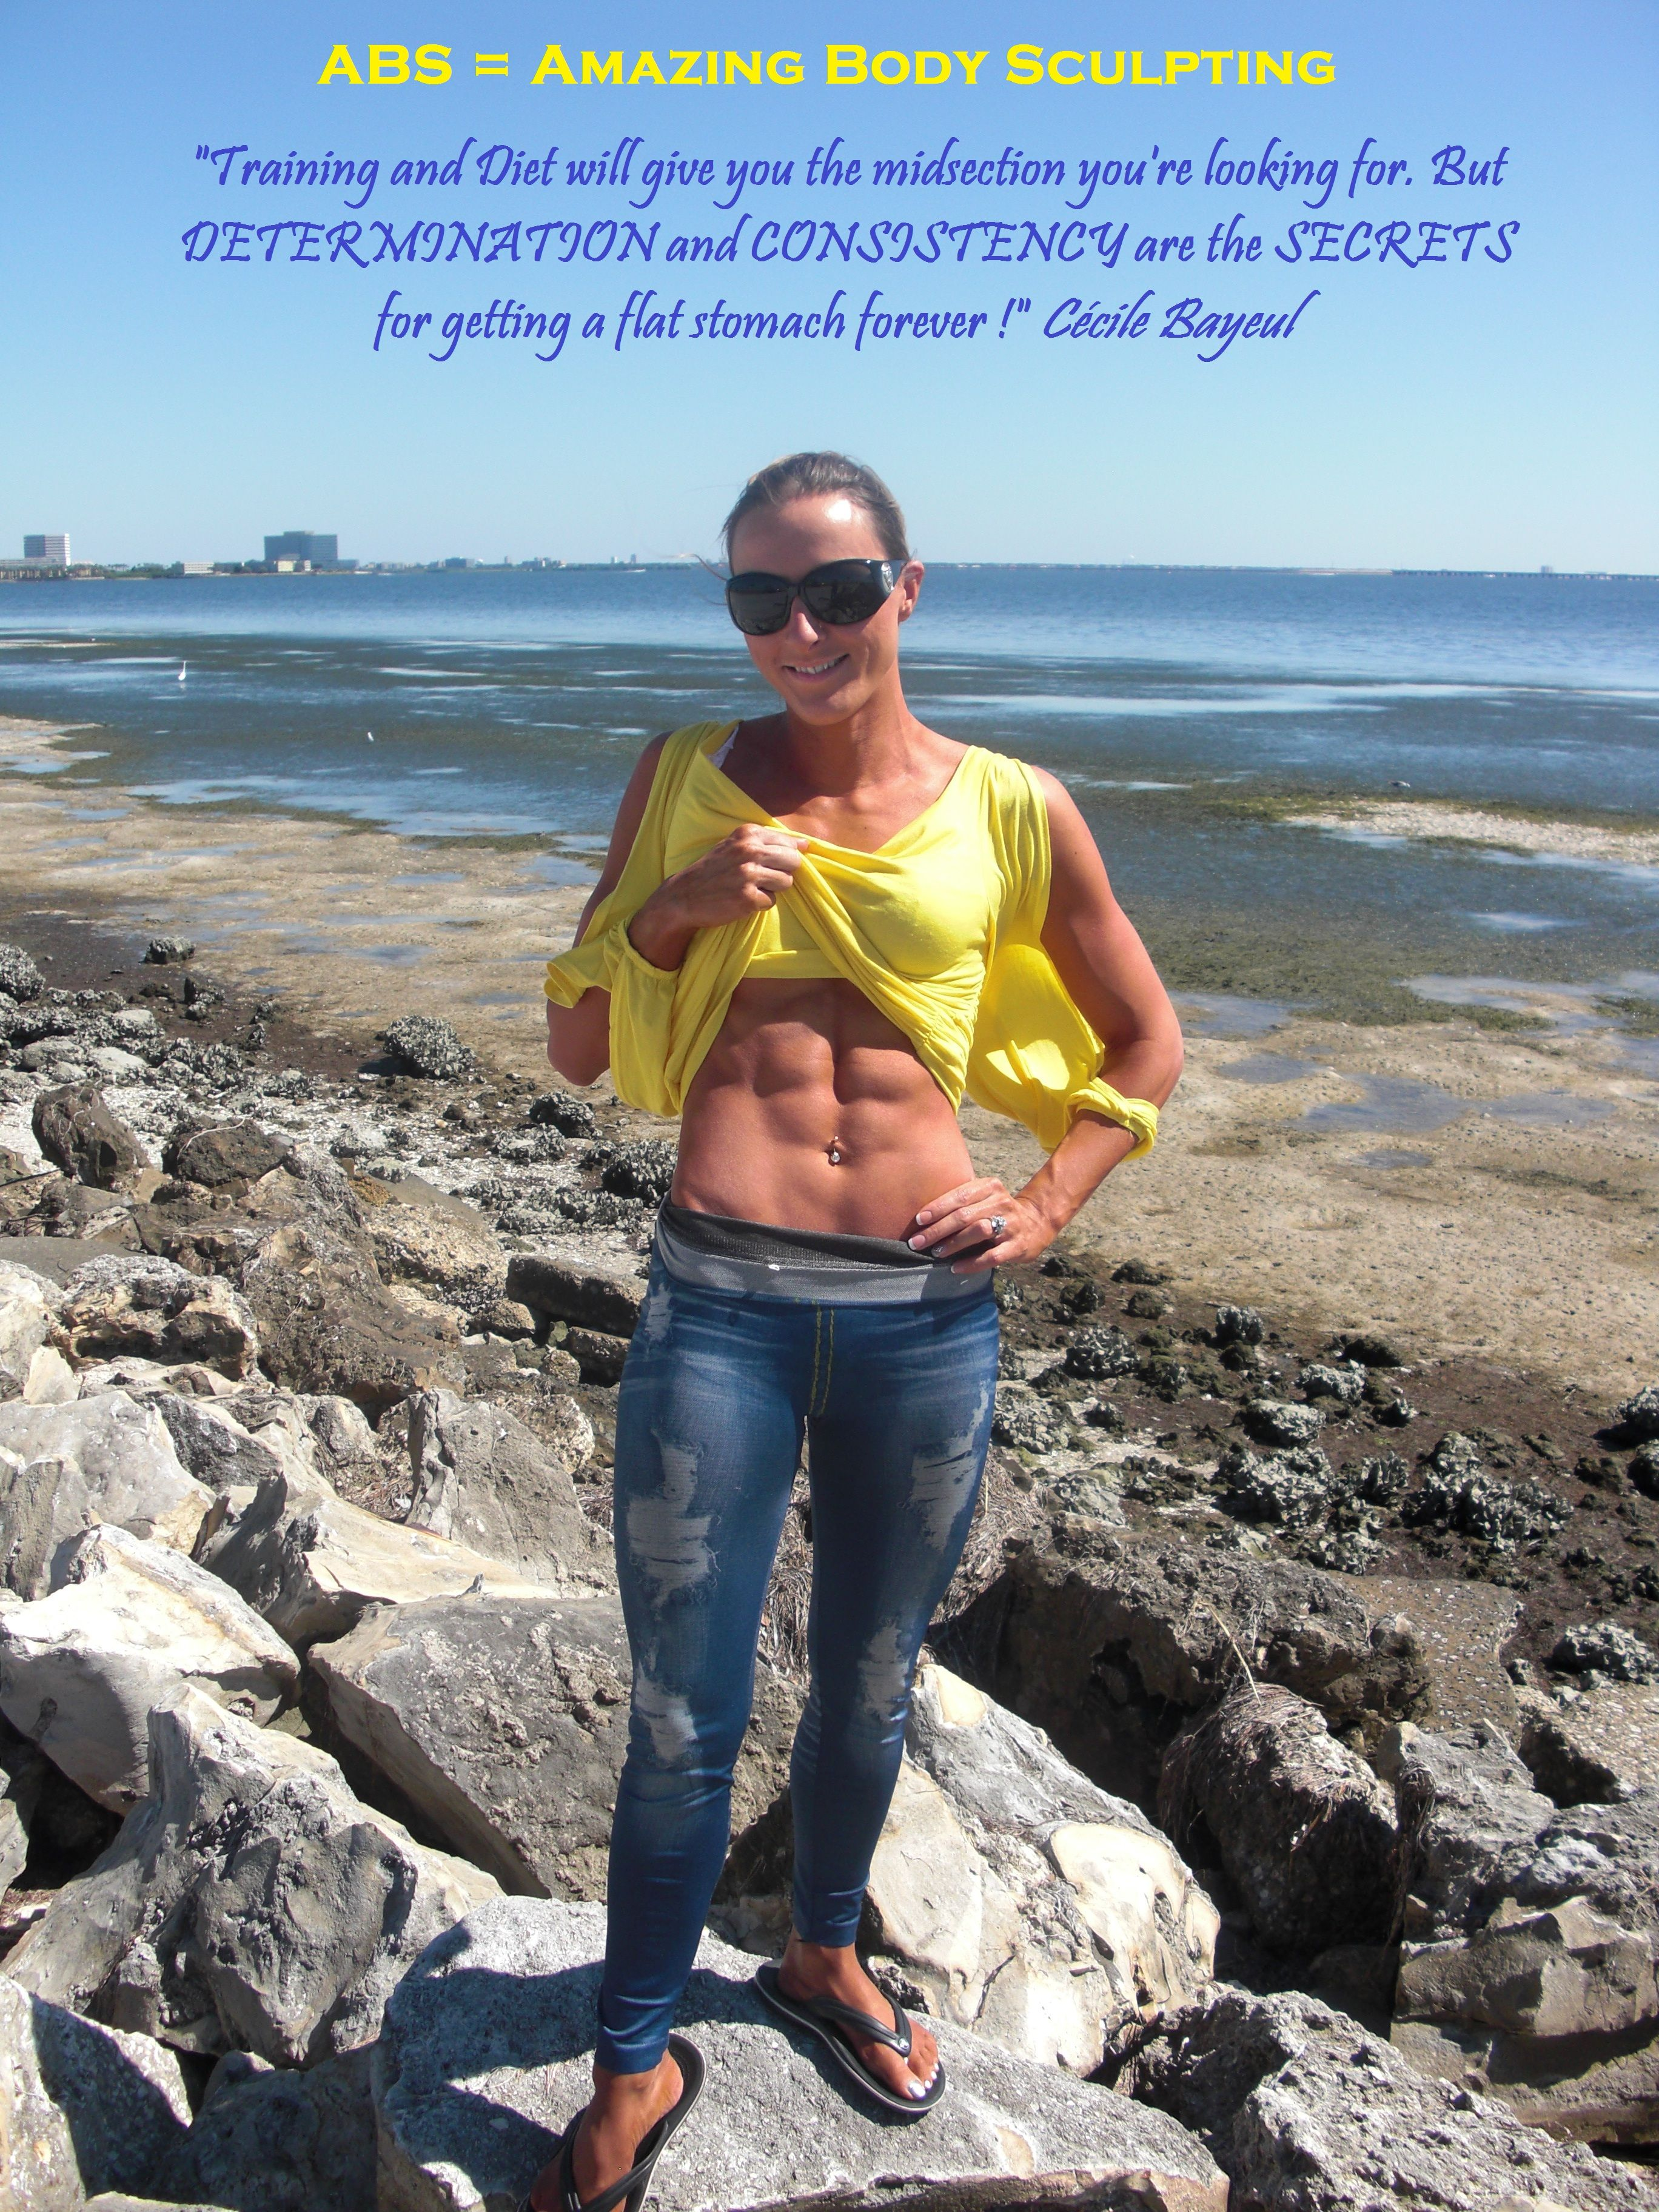 https://www.facebook.com/cecilebayeul DETERMINATION and CONSISTENCY